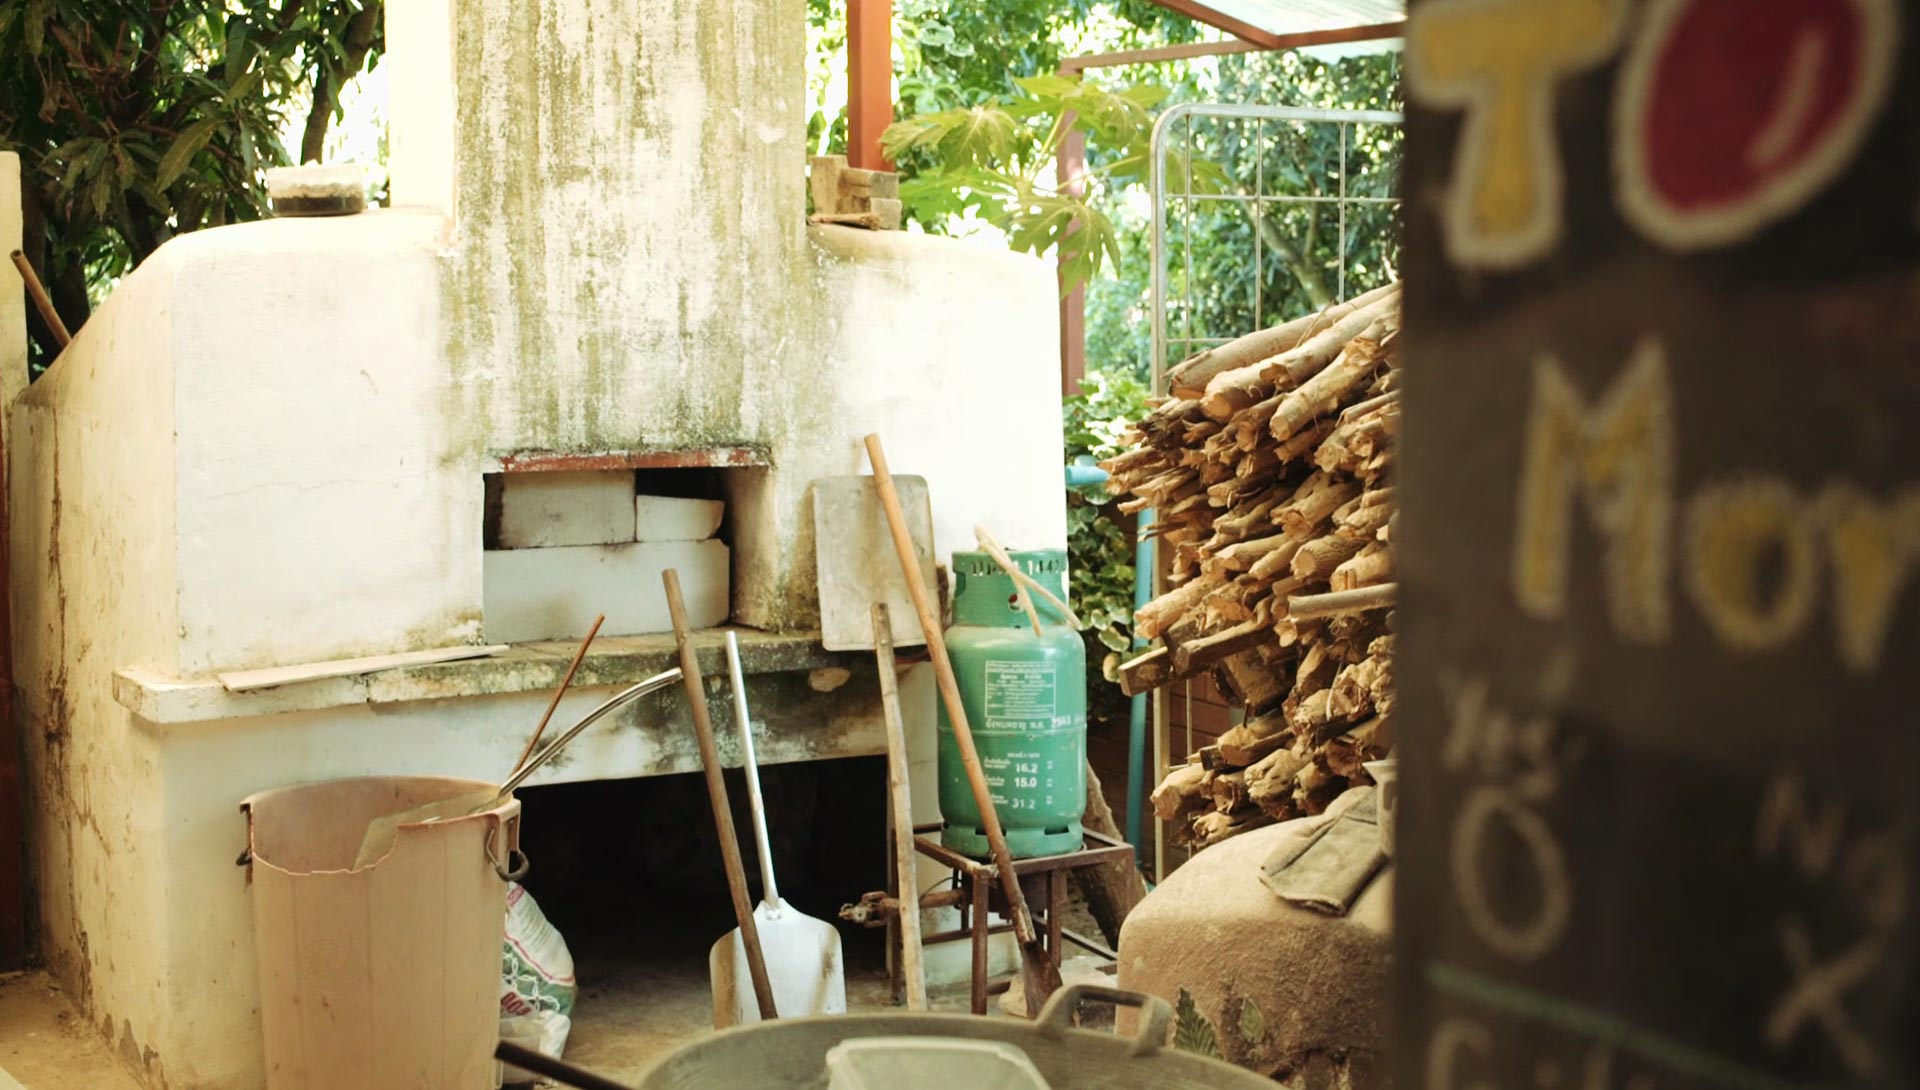 The wood fired water heater & oven at Daruma ecovillage